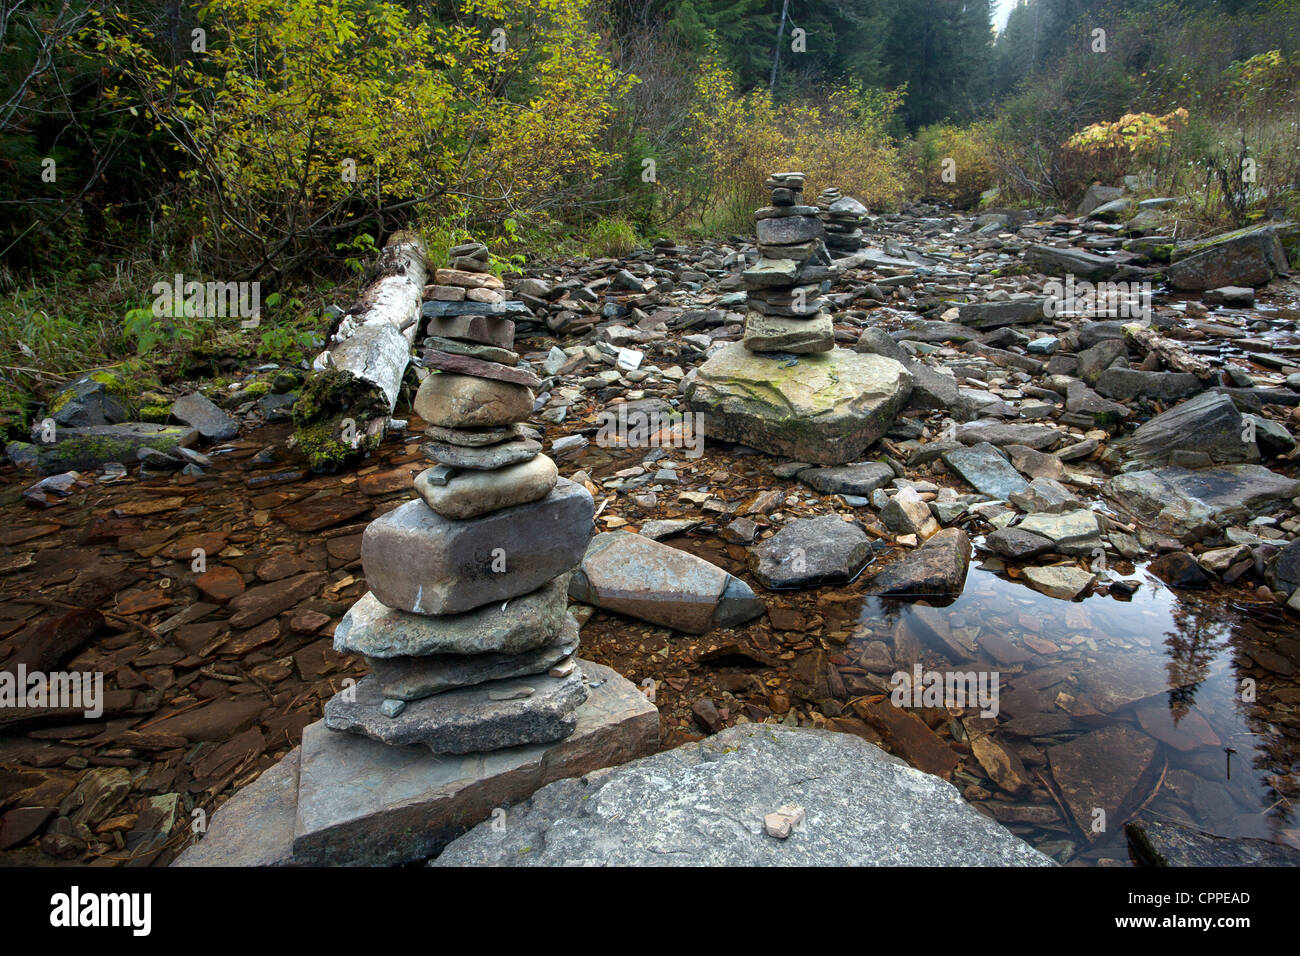 A couple of stacks of cairns accentuate the beauty of the small calm stream. - Stock Image